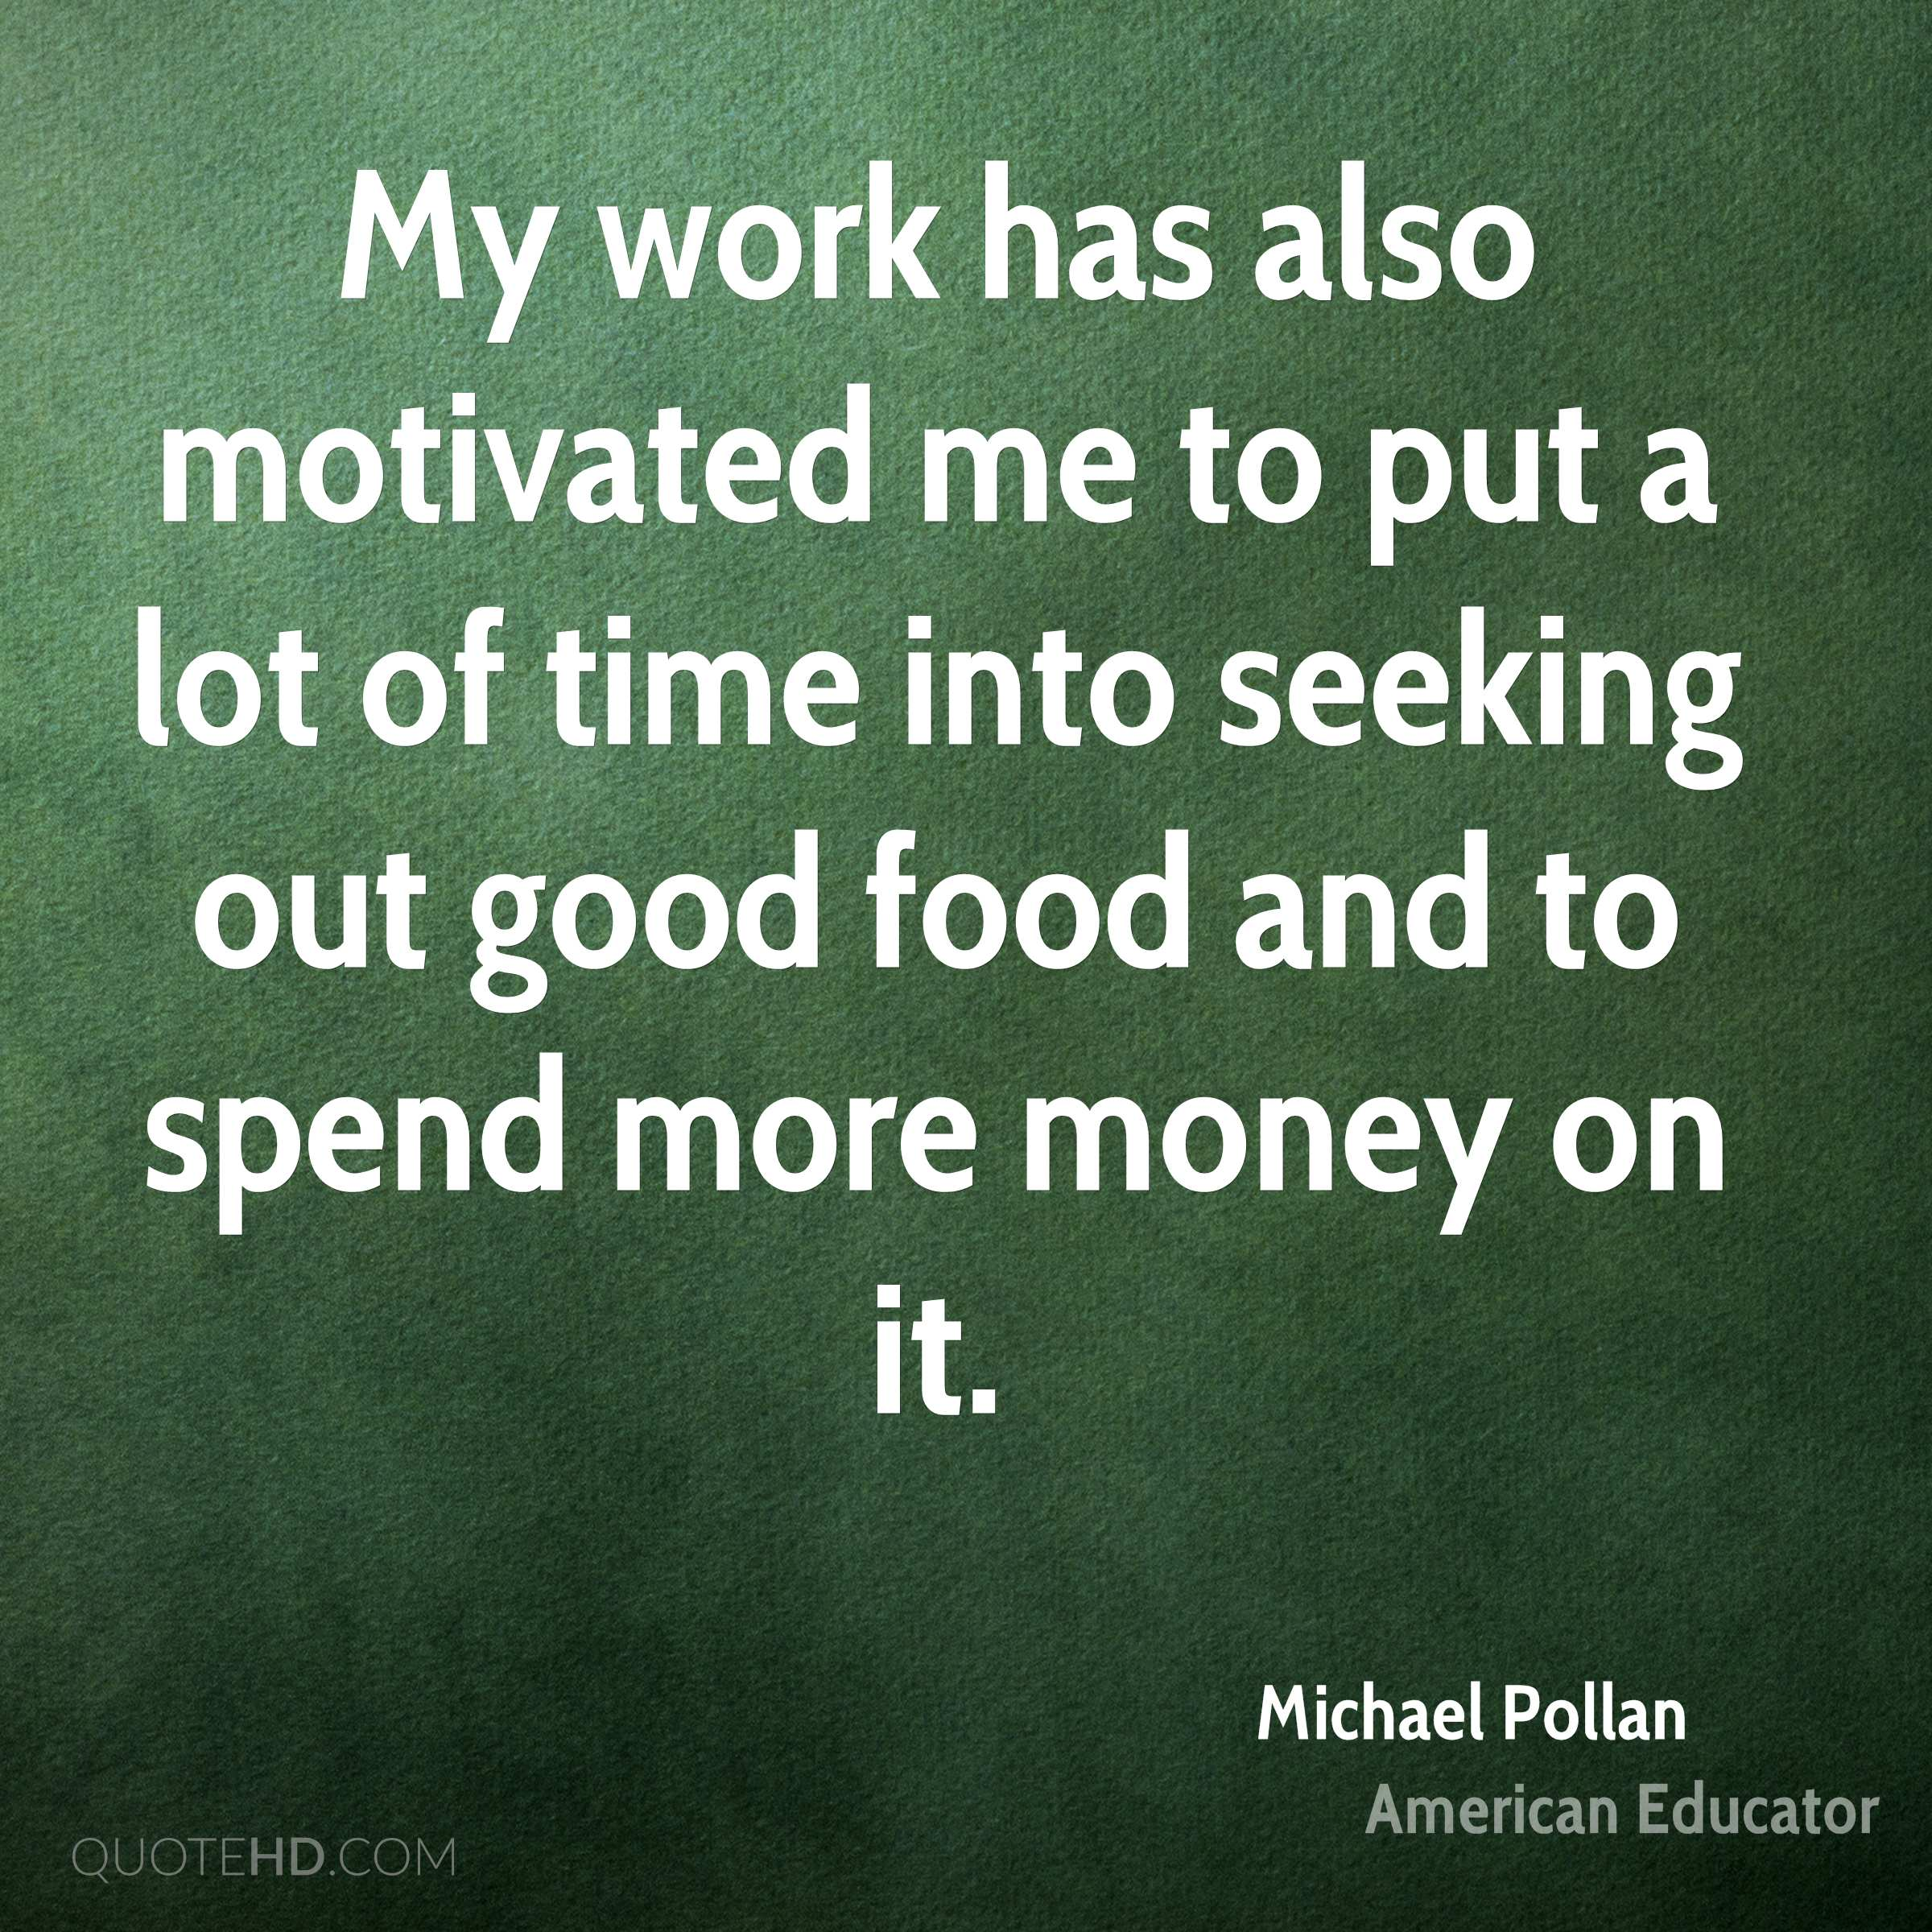 My work has also motivated me to put a lot of time into seeking out good food and to spend more money on it.